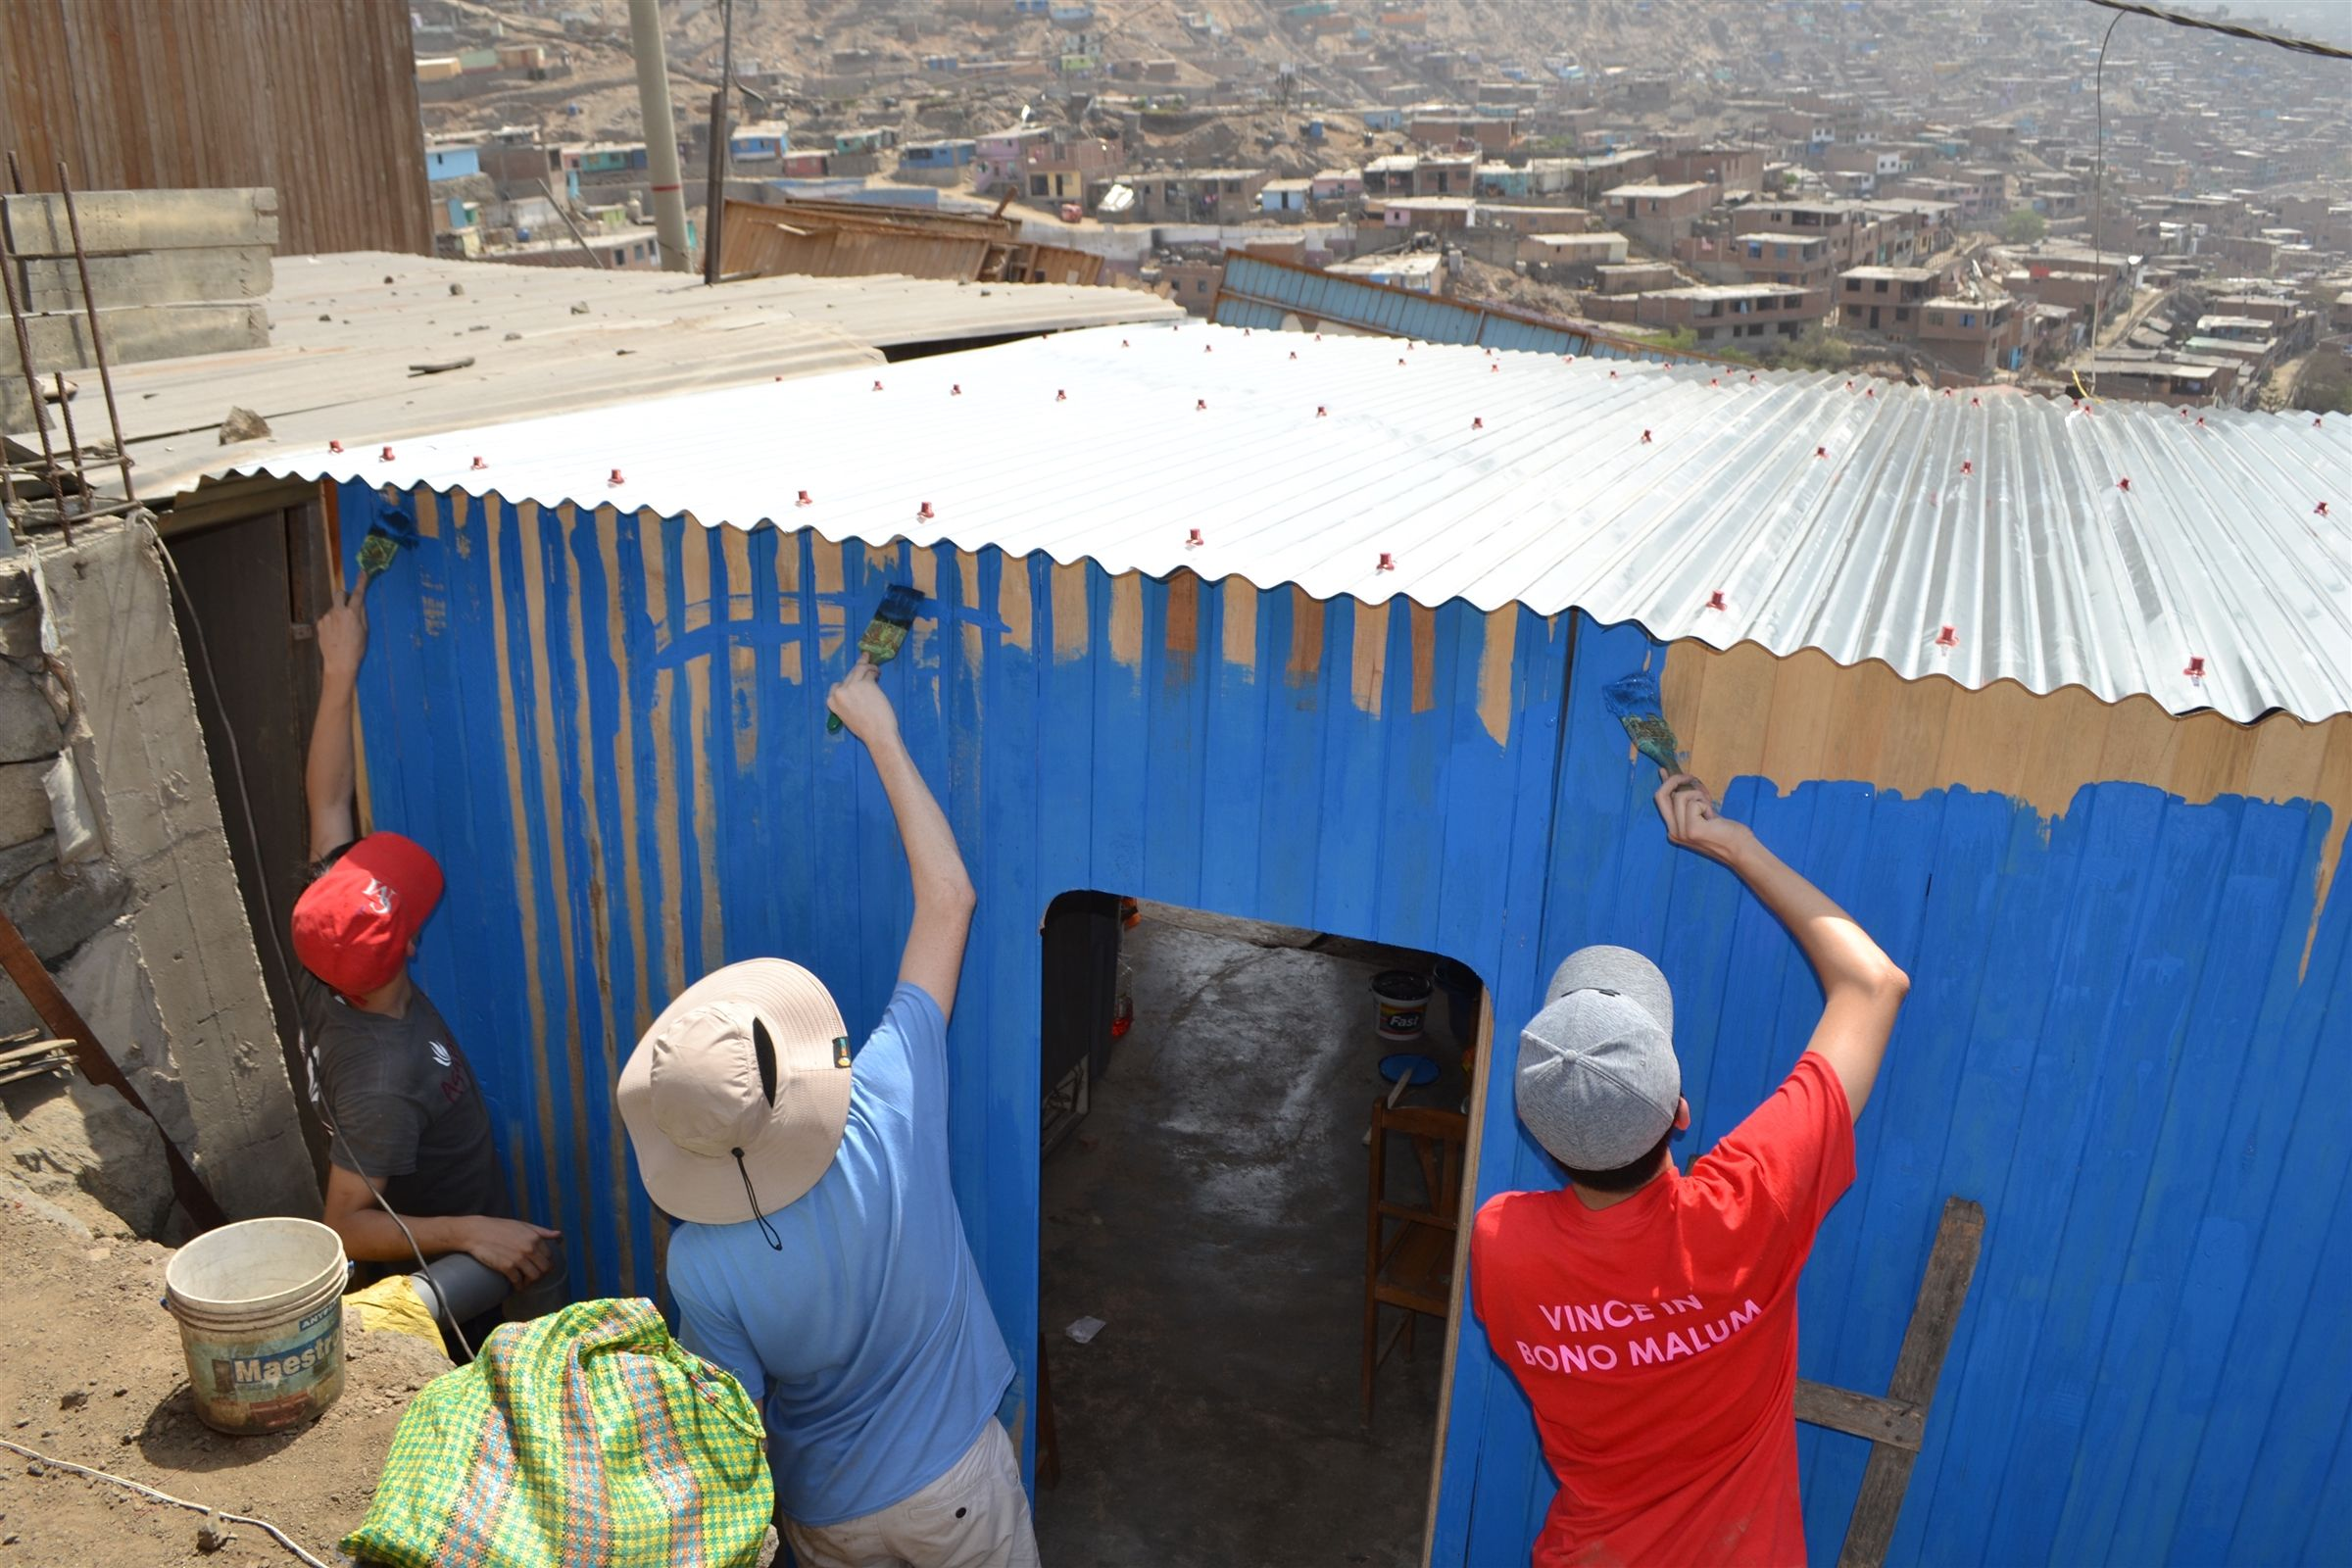 Students begin their service project in the Canto Grande neighborhood of Lima constructing a hillside house for a family. Over the two days, the boys assemble and paint the small home. The boys have the opportunity to meet and get to know the children of the family who will live in the home.